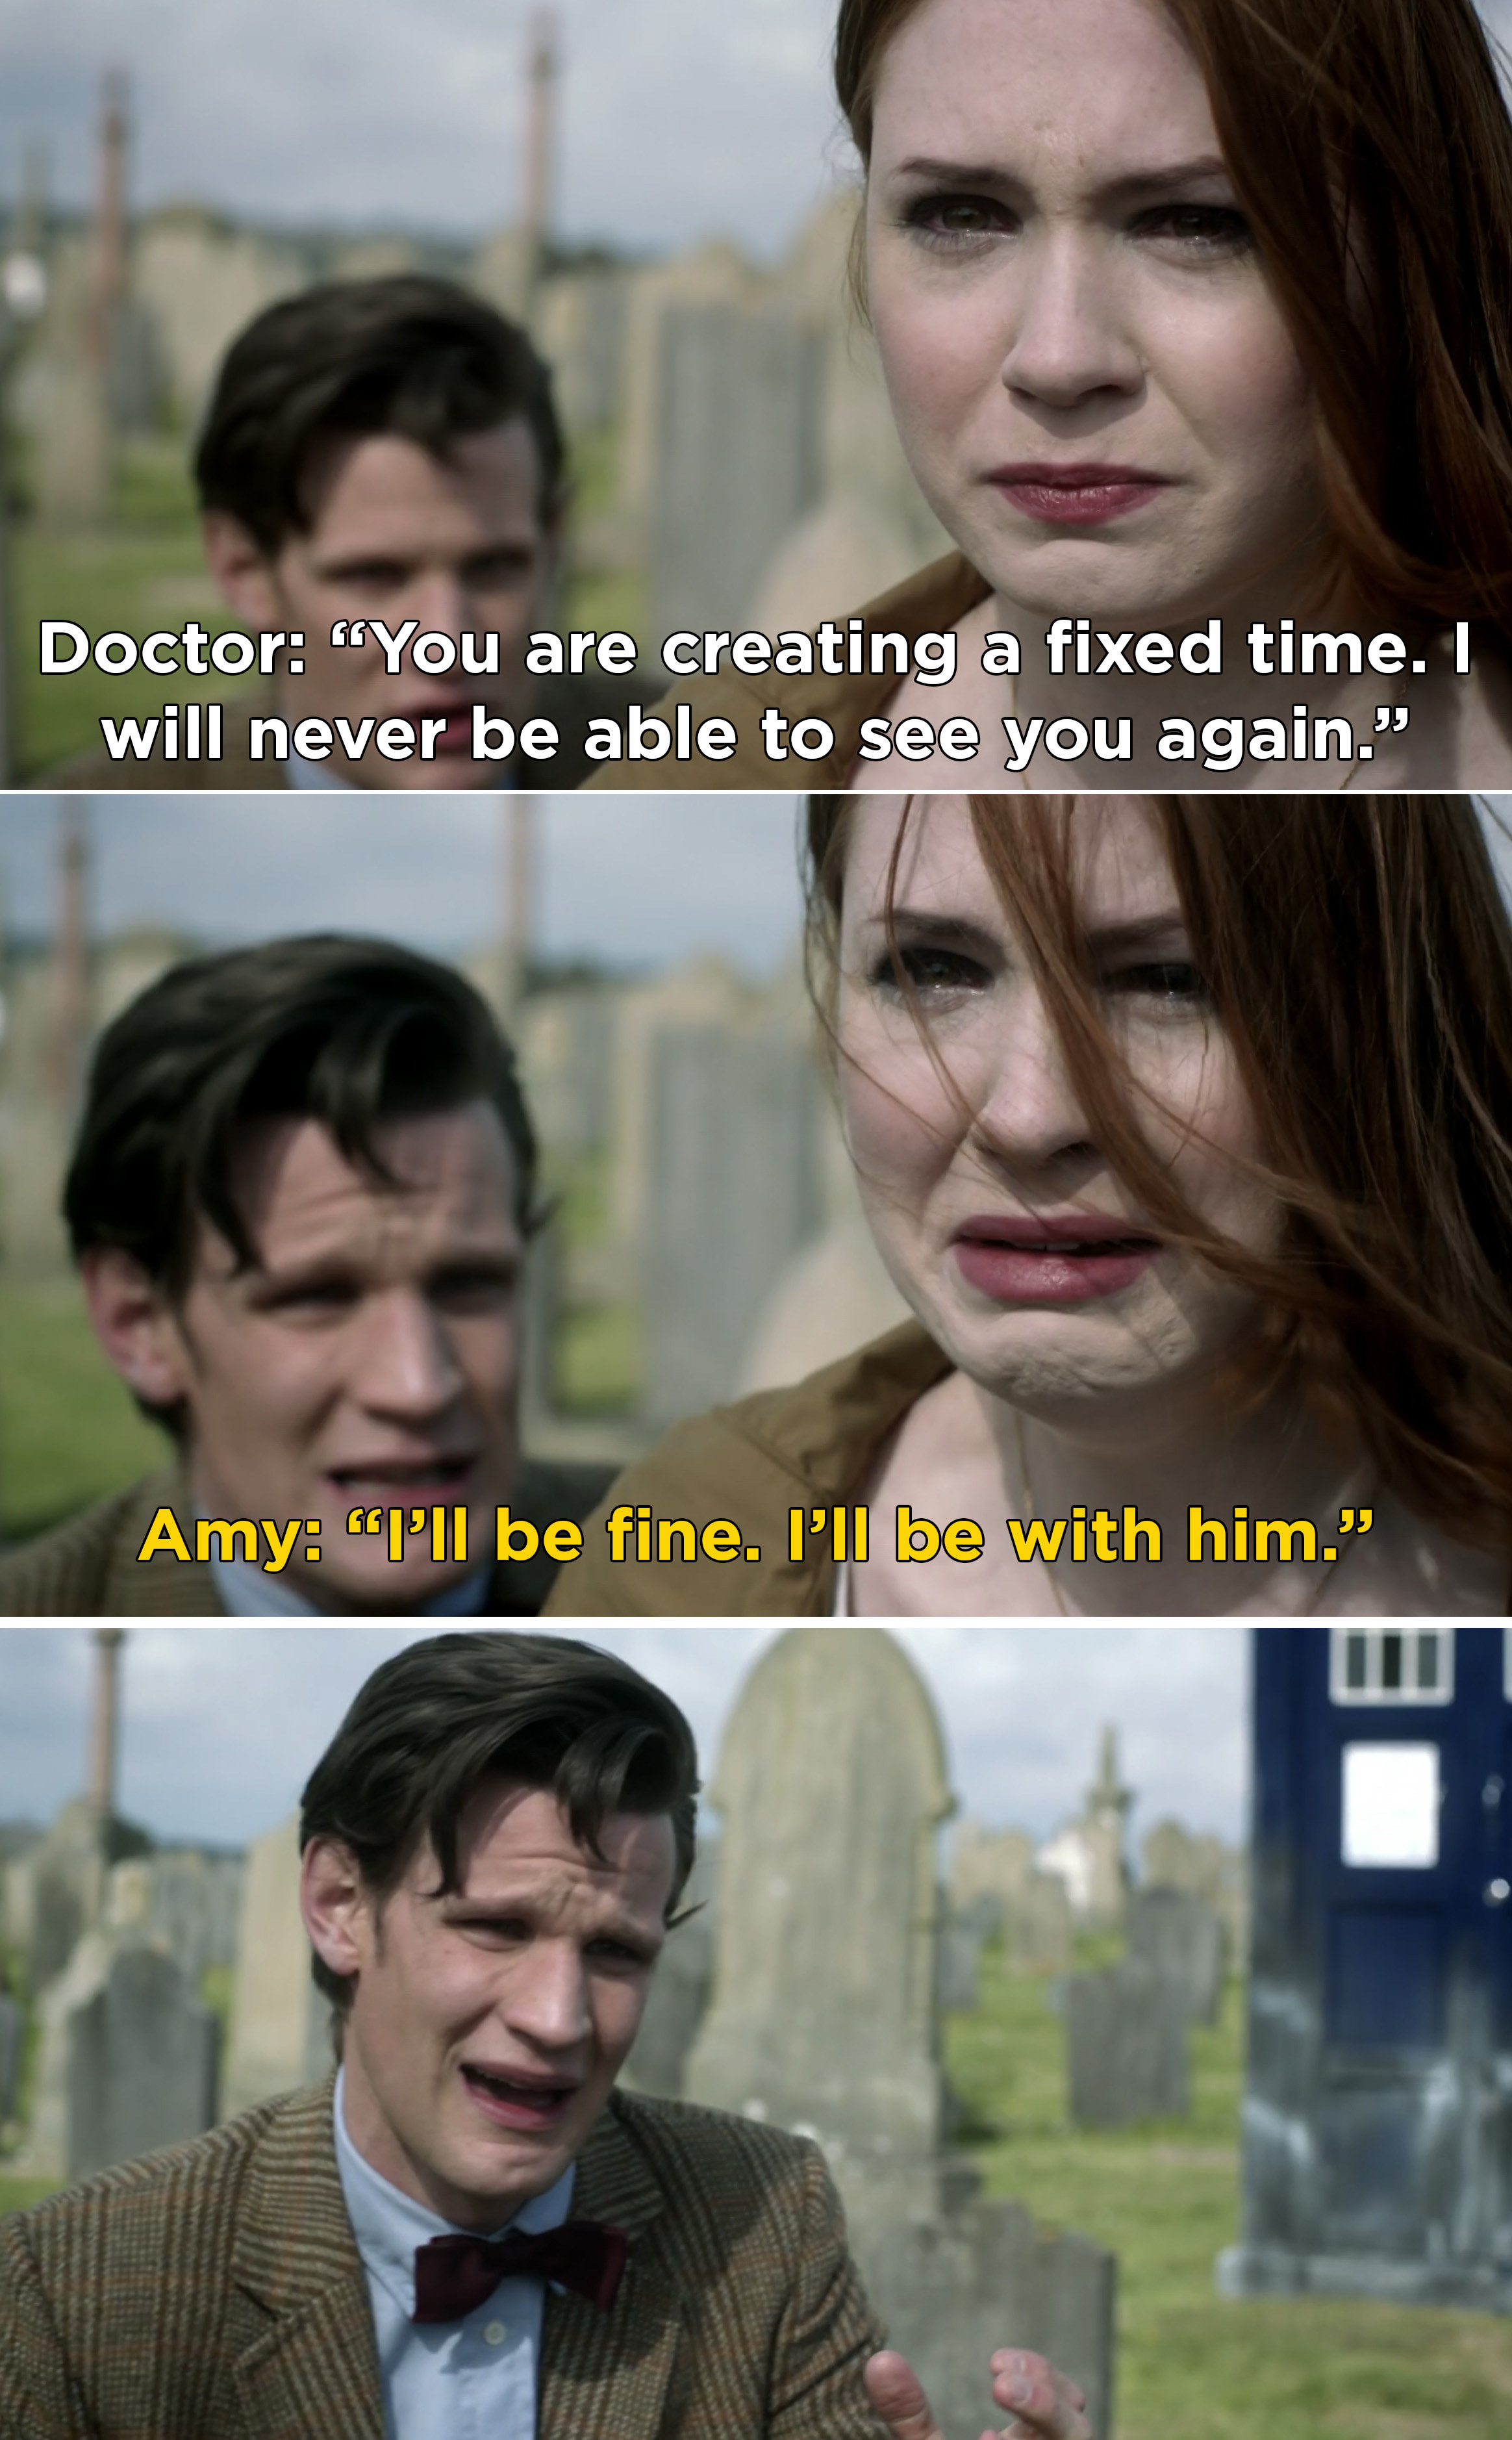 The Doctor pleading with Amy to stay, but Amy saying she'll be fine